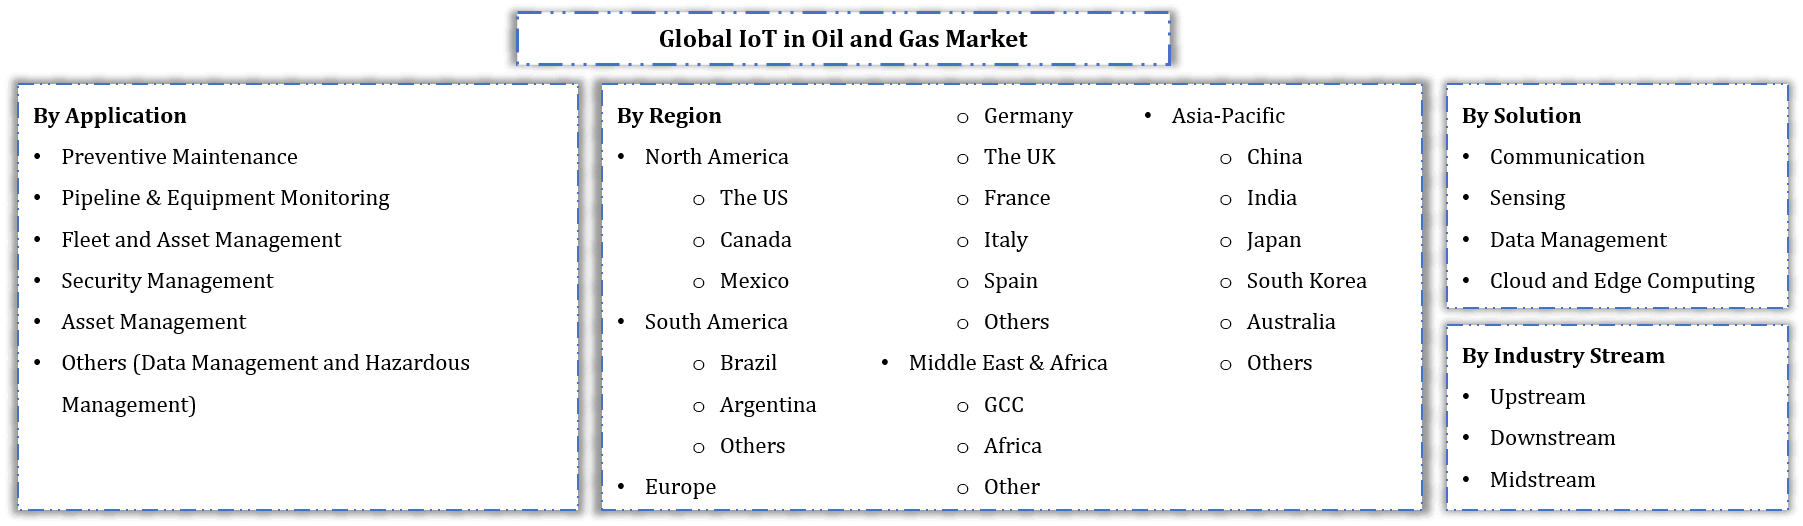 Global IoT in Oil and Gas Market Segmentation